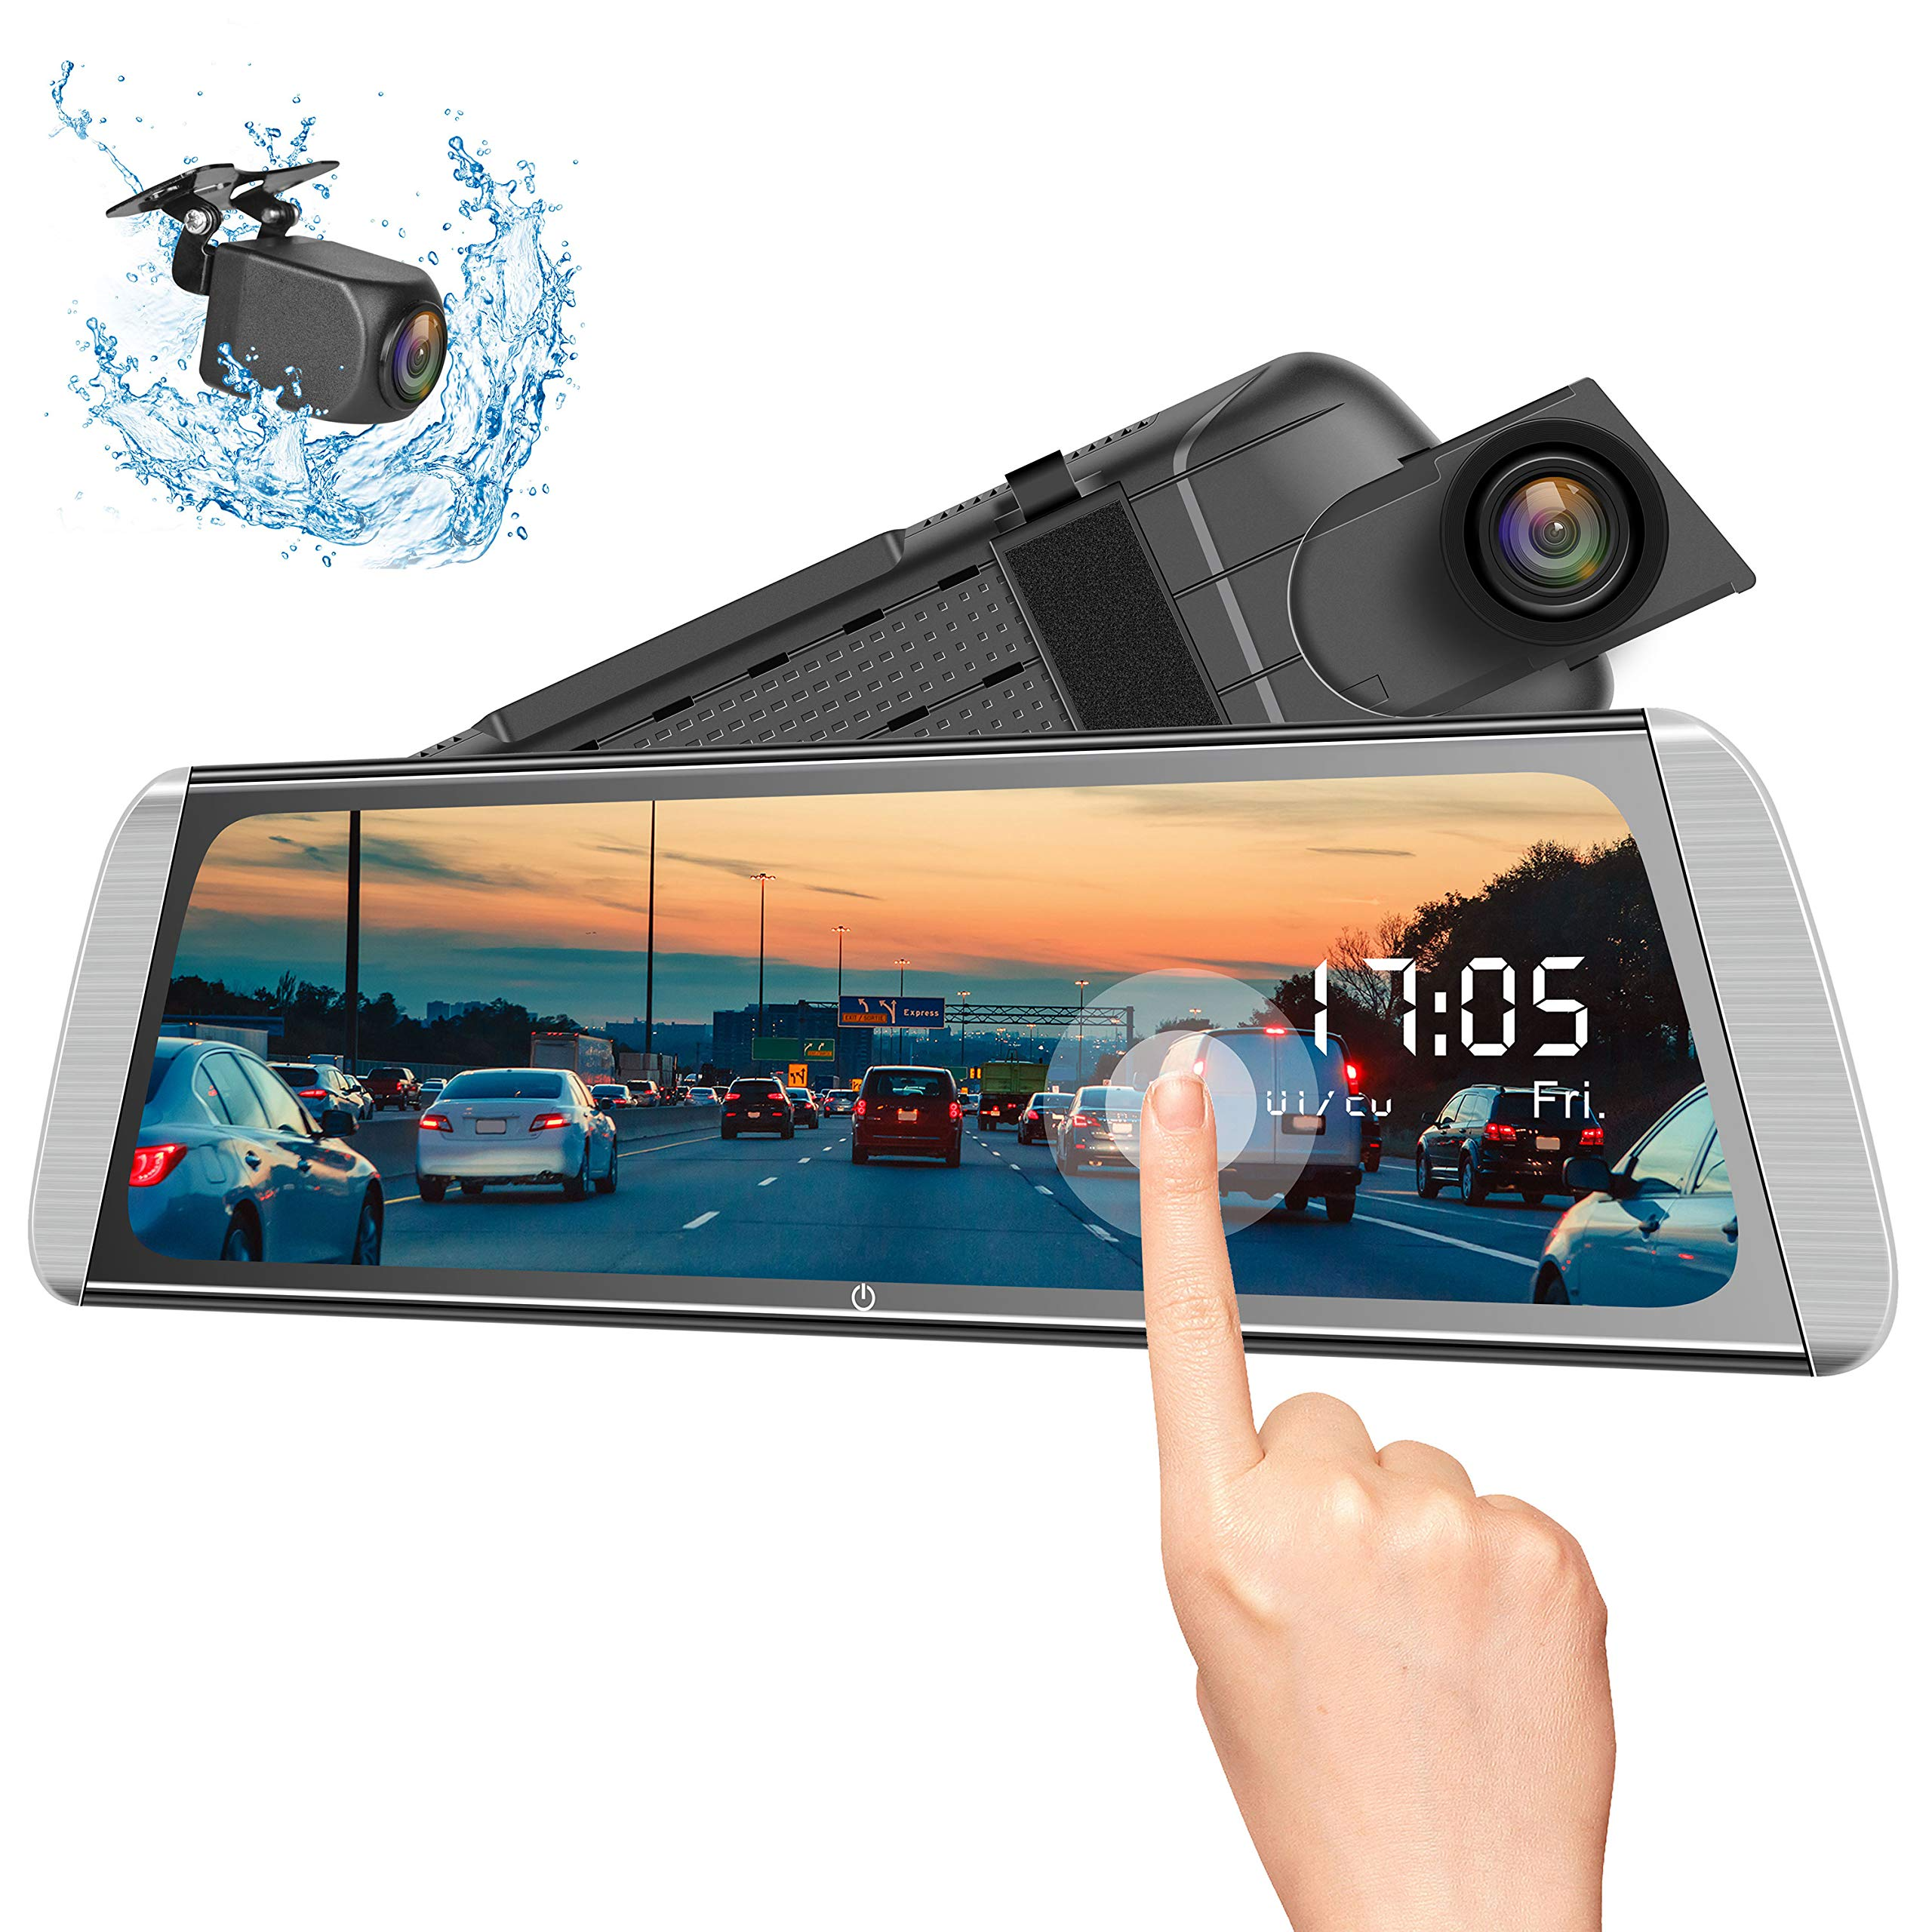 Campark Mirror Dash Cam 10 Inches 1080P Touch Screen Rear View Camera for Car Video Streaming with Enhanced Night Vision Parking Assistance